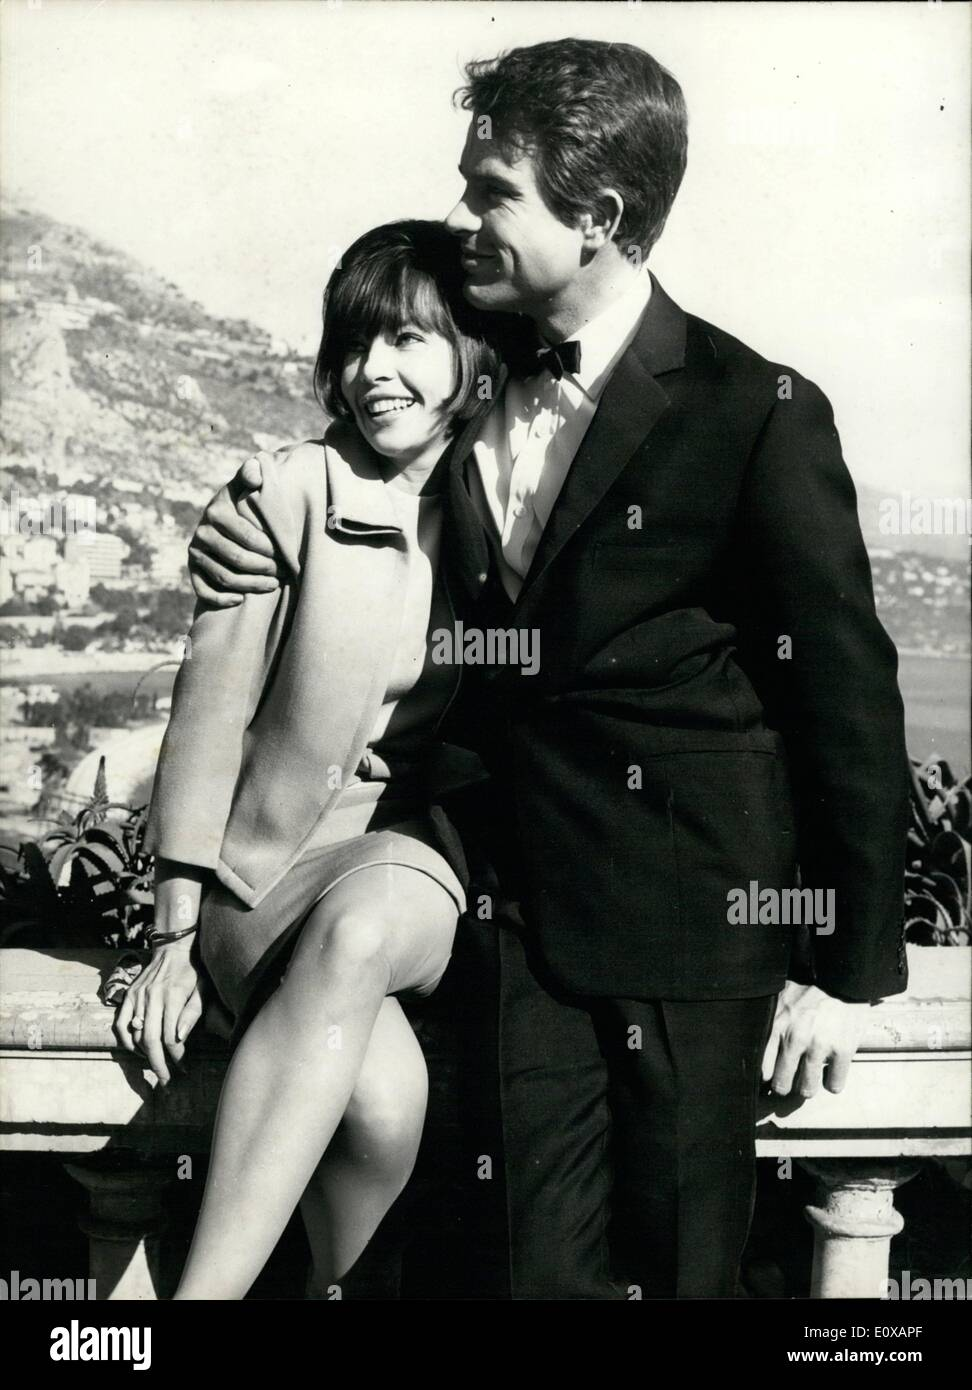 Jan. 01, 1966 - 4) Leslie Caron pictured with Warren Beatty on month Carlo Terrrasse Cverlocking the bay. - Stock Image